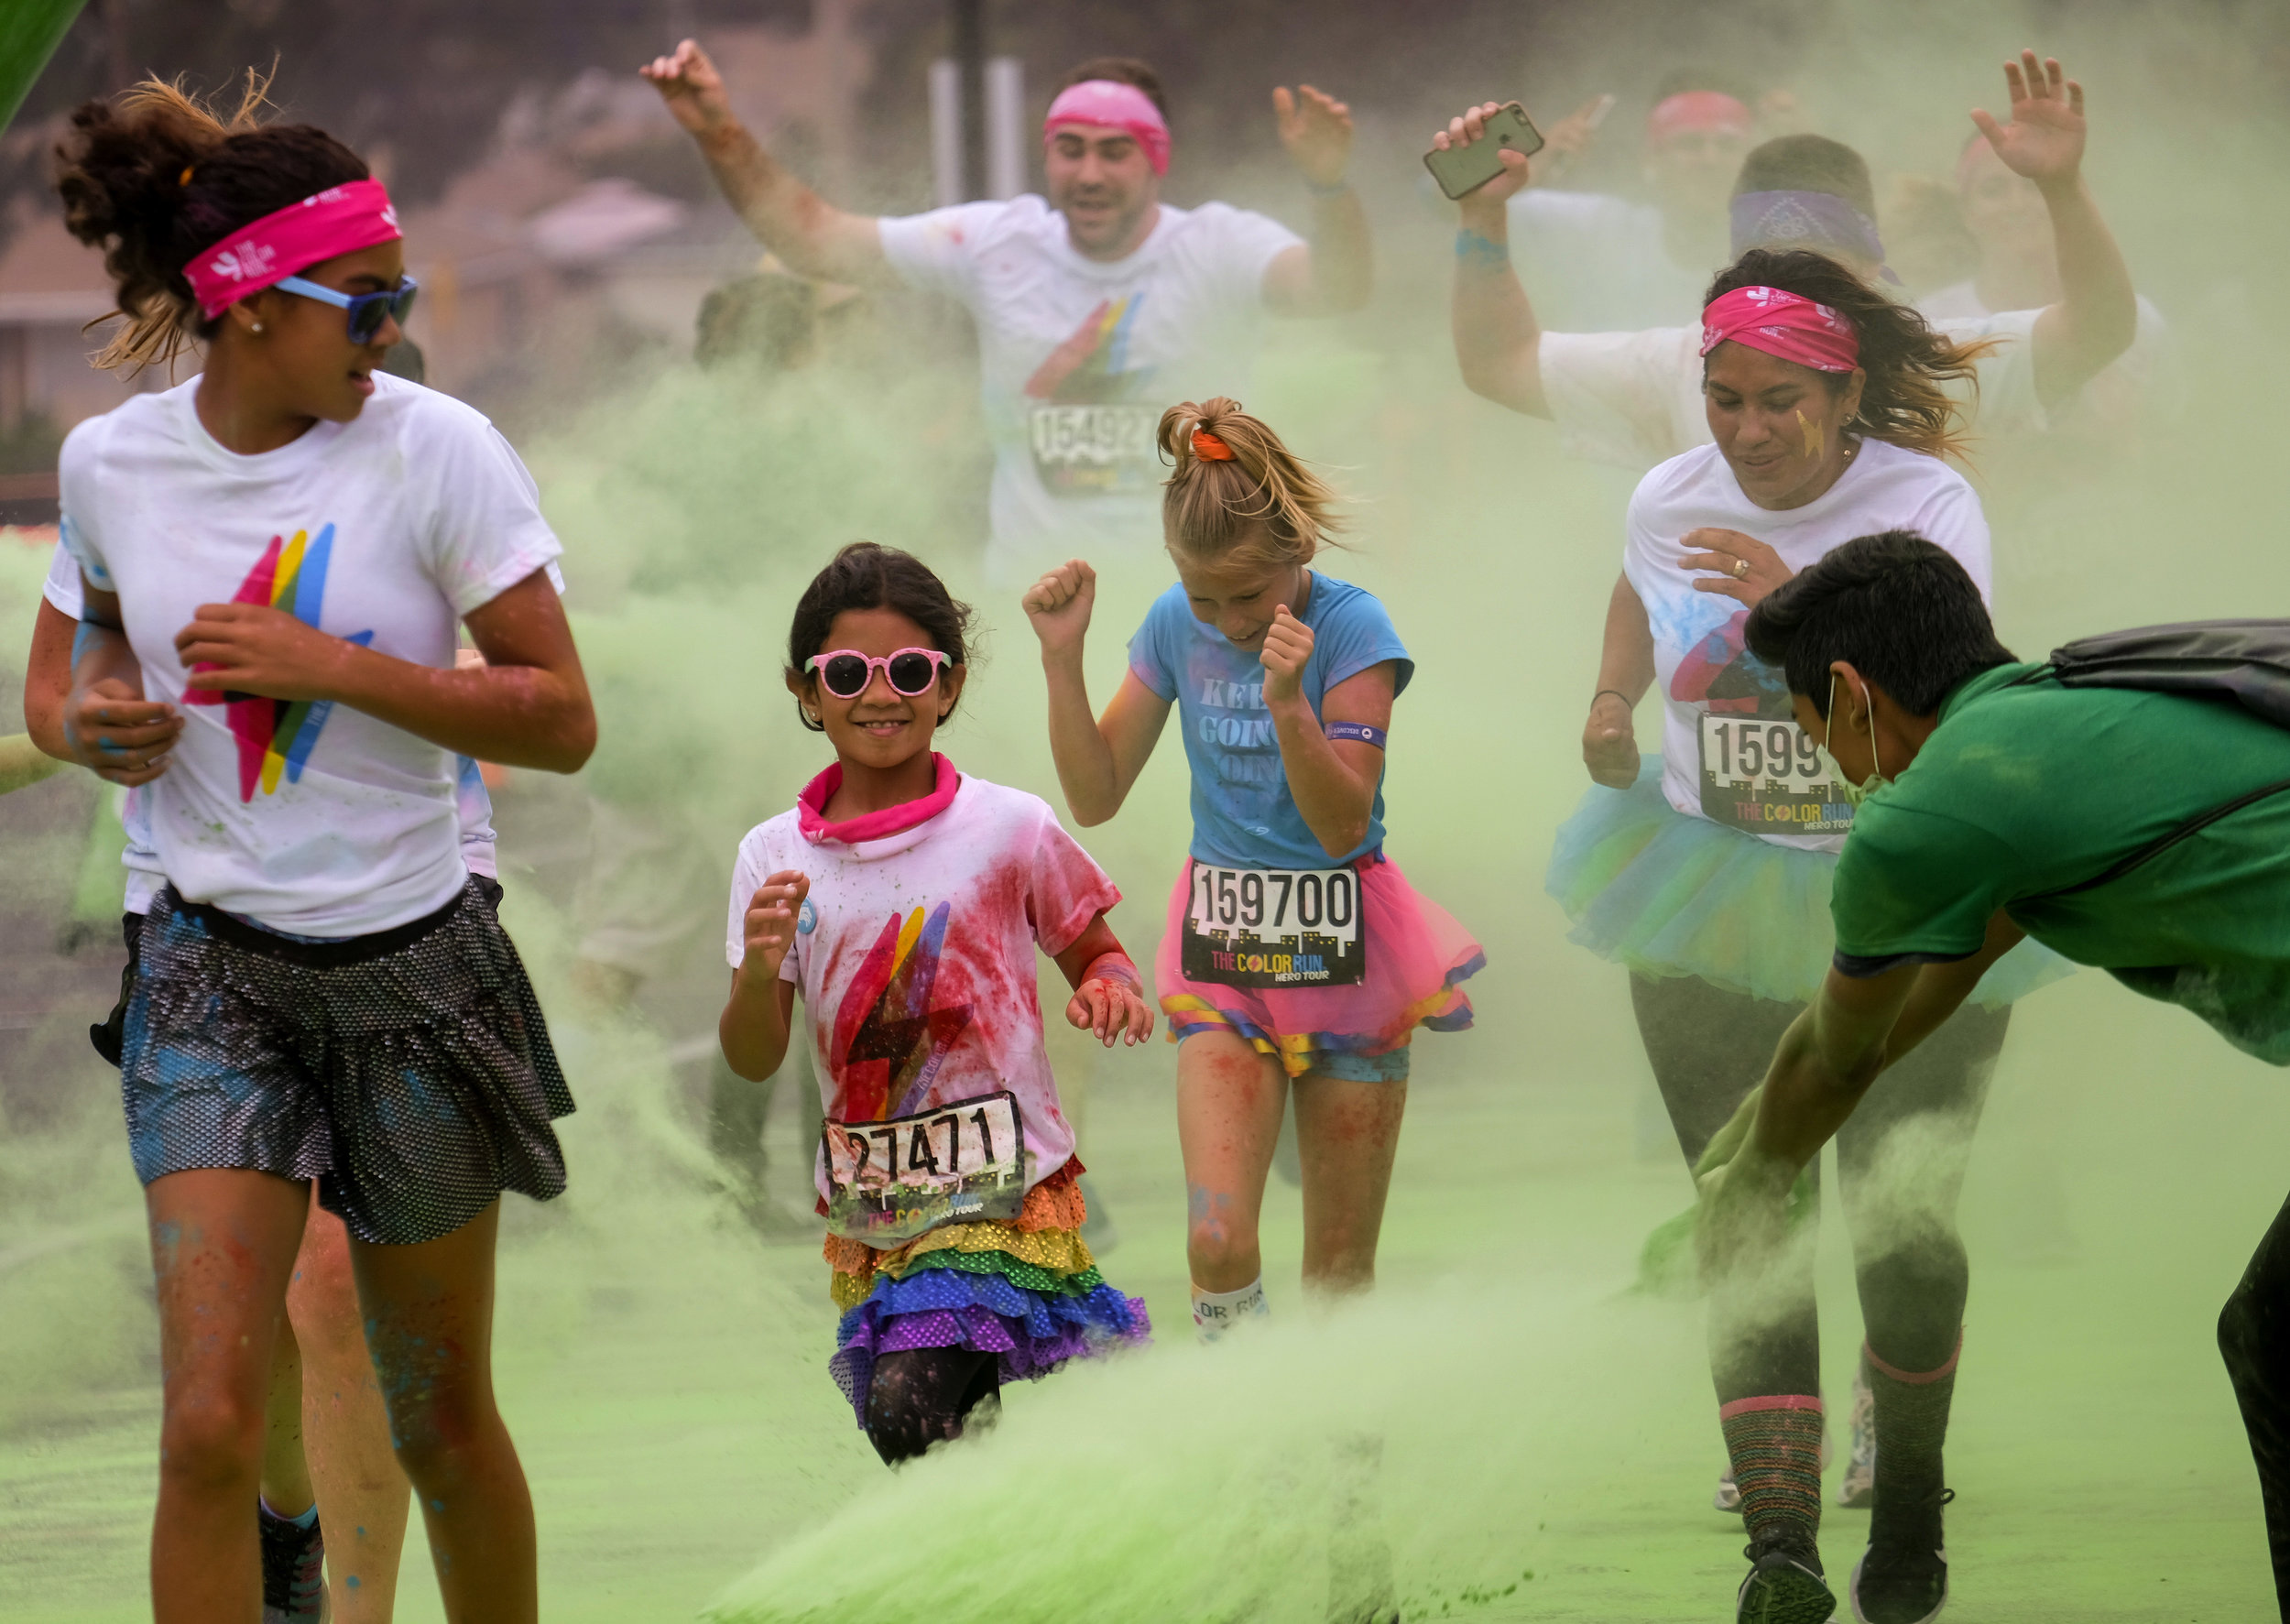 Runners revel while running through clouds of colorful powder thrown by volunteers in the Color Run at the StubHub Center in Los Angeles, United States, June 23, 2018.